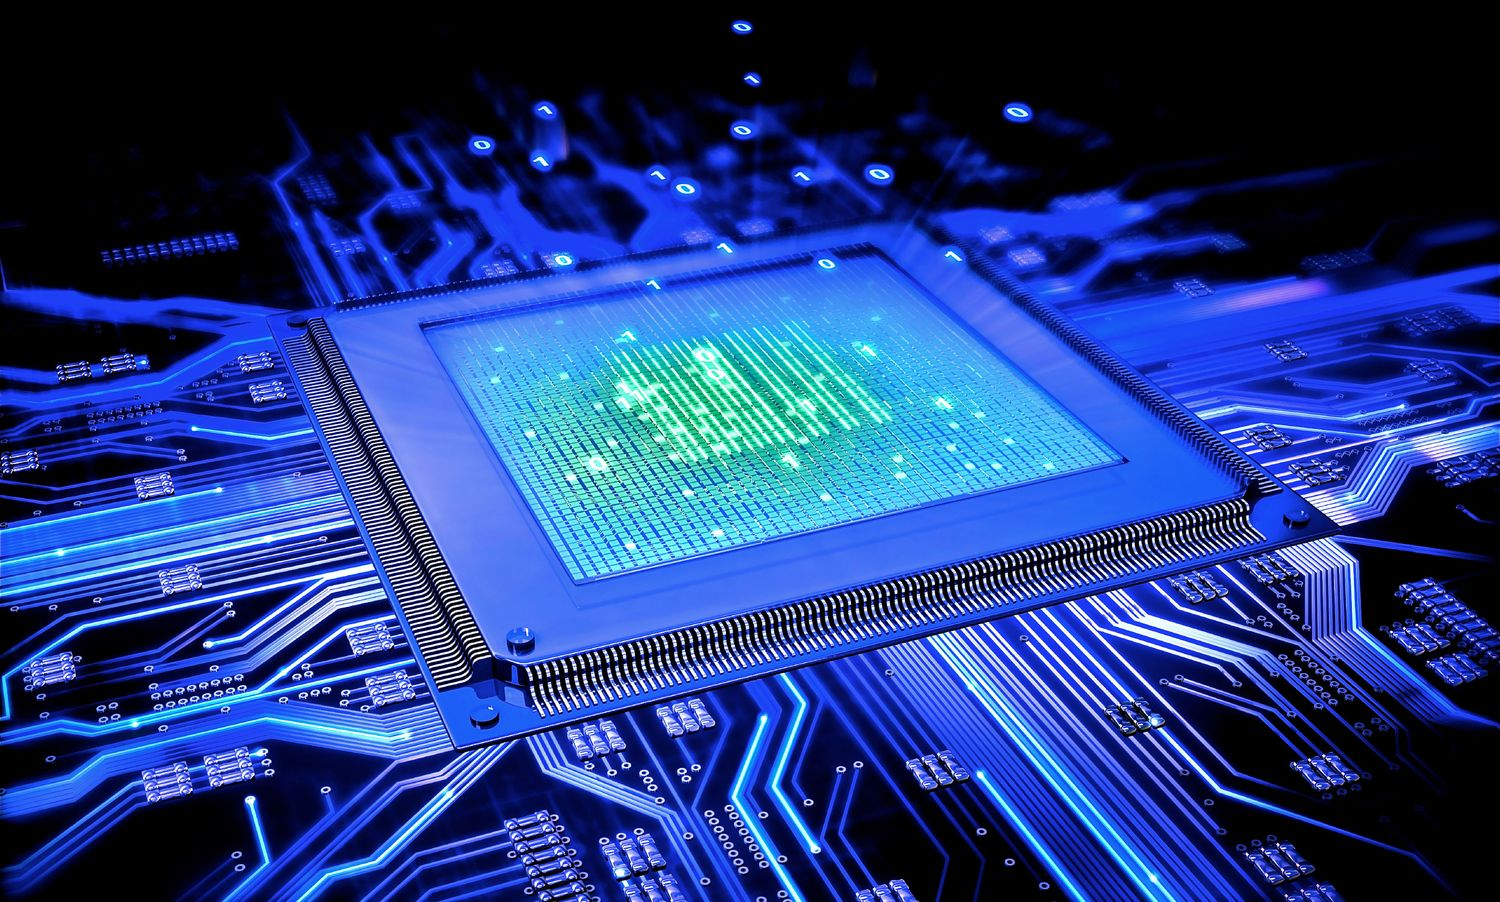 Scientists have created the first quantum microchip memory